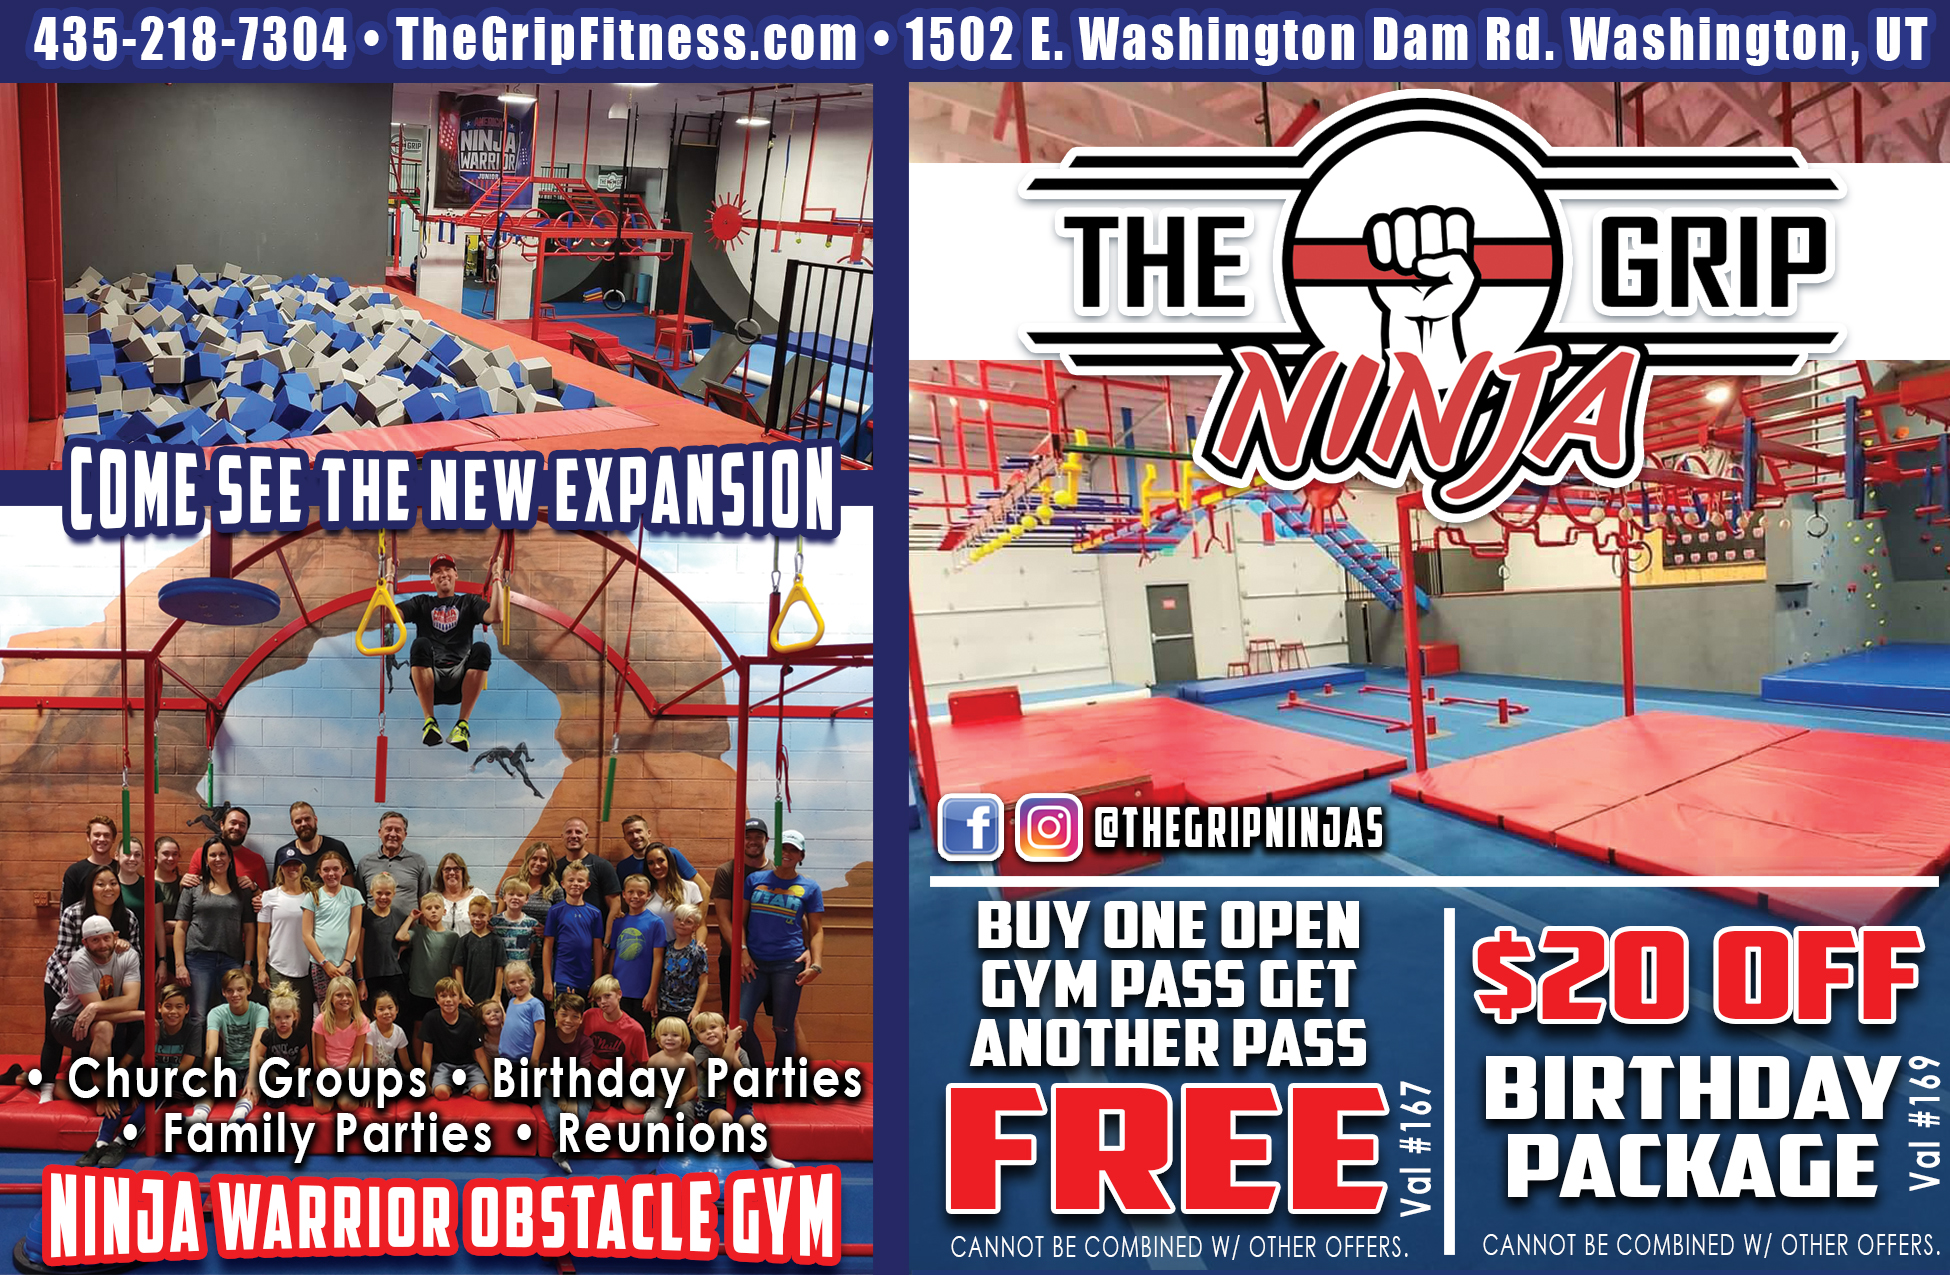 The Grip - Ninja Warrior Arena